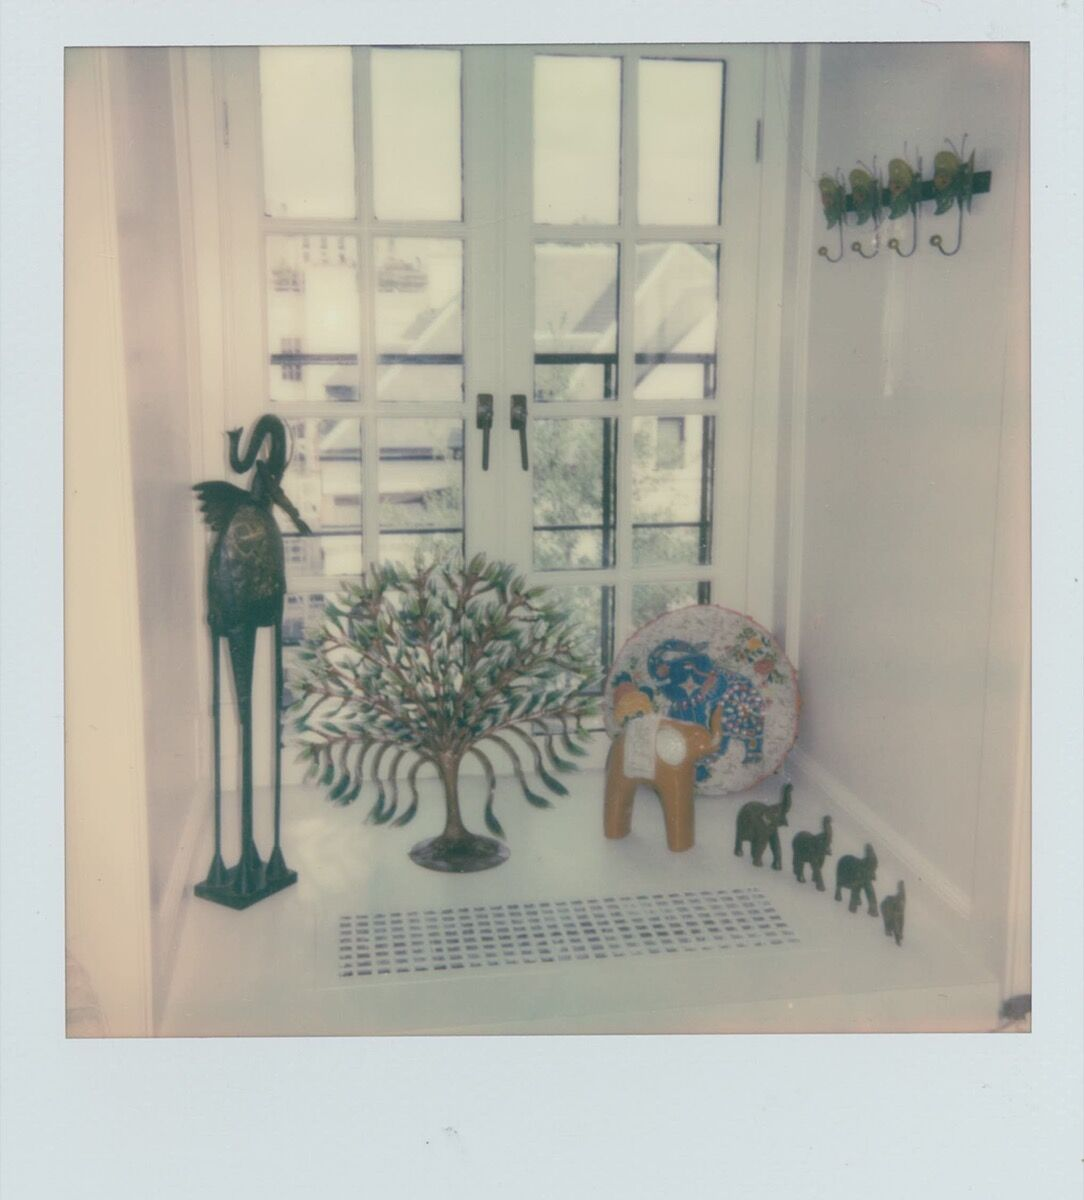 Elephant figurines and other, mostly African, artworks from Clay's personal collection decorate her office.